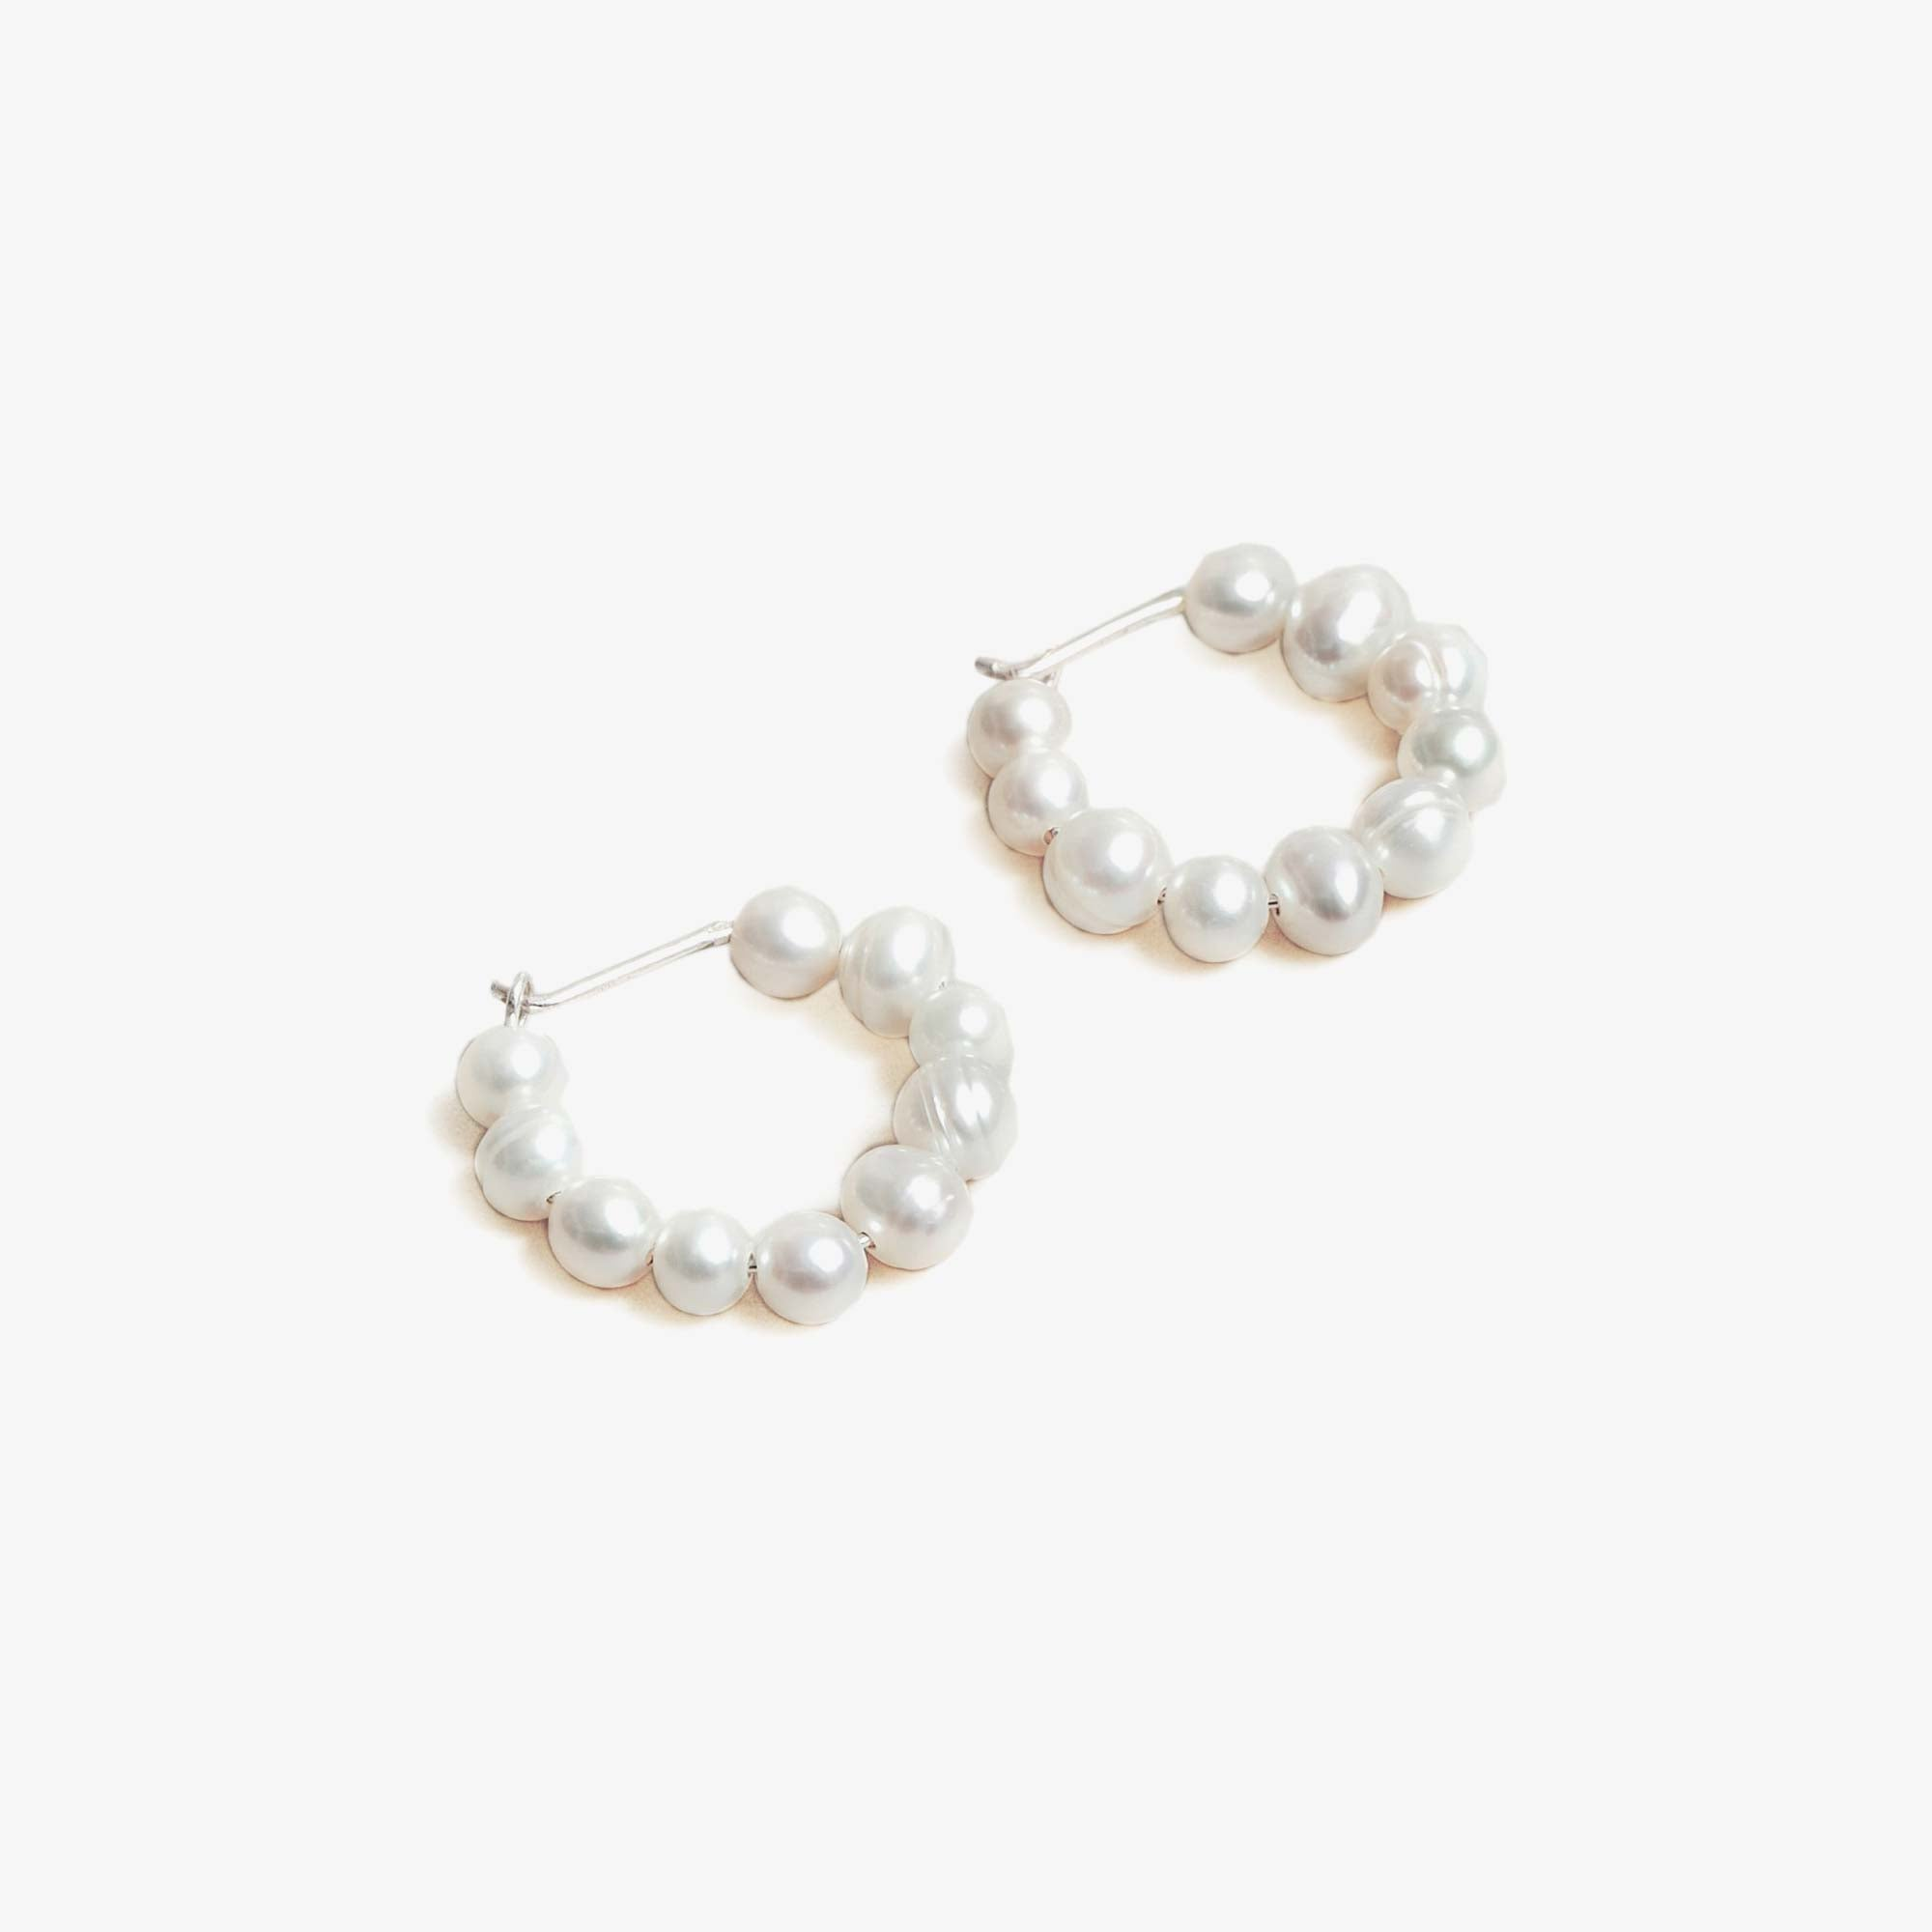 Wolf Circus Estelle Earrings - Freshwater Pearl / Silver 1